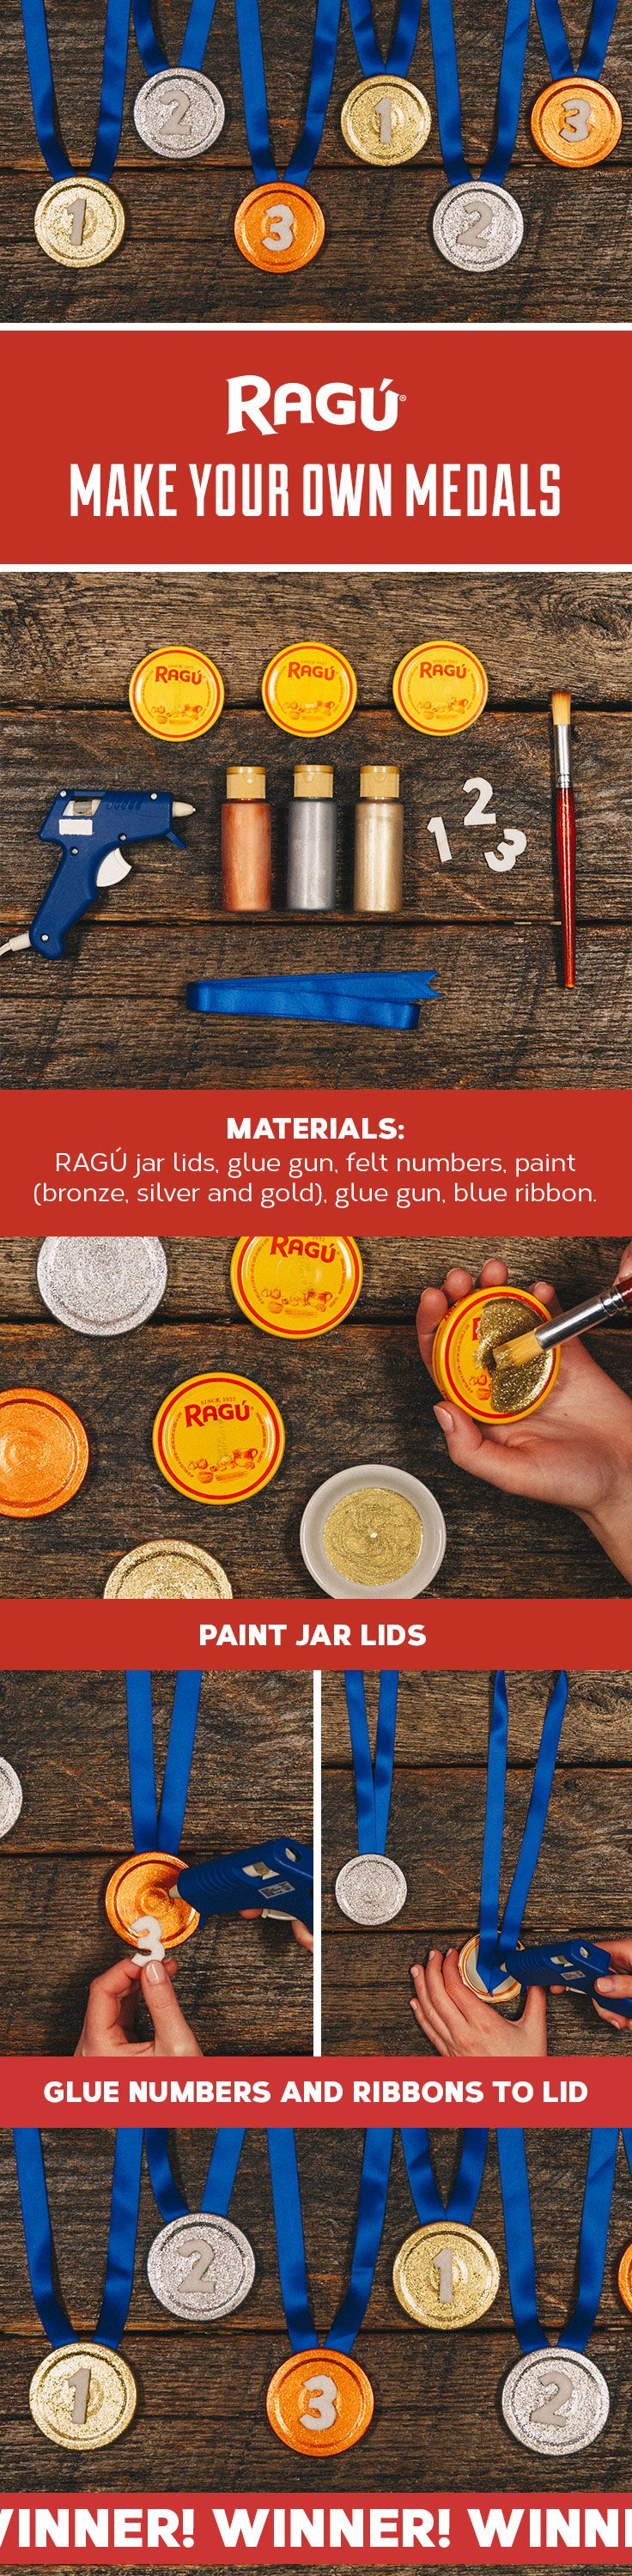 Check out this fun way to recycle RAGÚ sauce jar lids into medals for achievements in your house. This fun and easy DIY craft project for kids is a great award for Best Helper or Best Cook in the House!